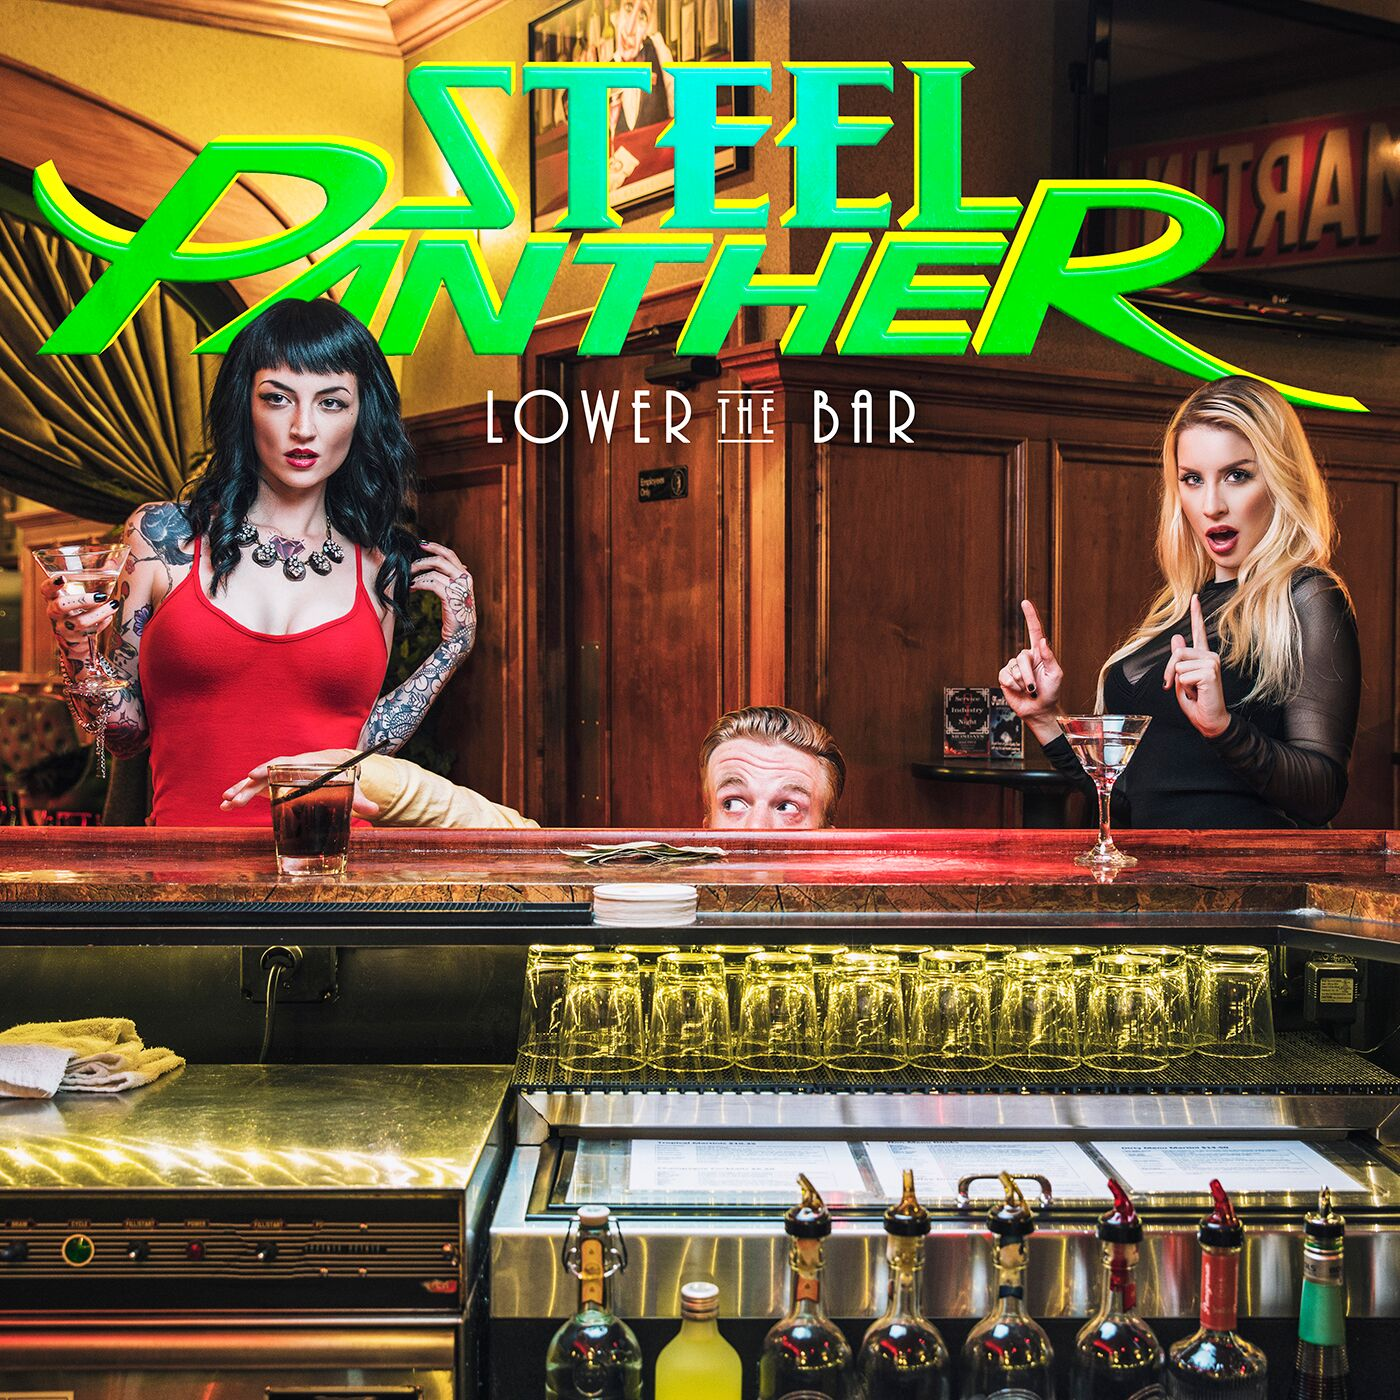 Rock Reviews dirt image: https://wallofsounddotorg.files.wordpress.com/2016/09/steelpanther_lowerthebar_cover.jpg